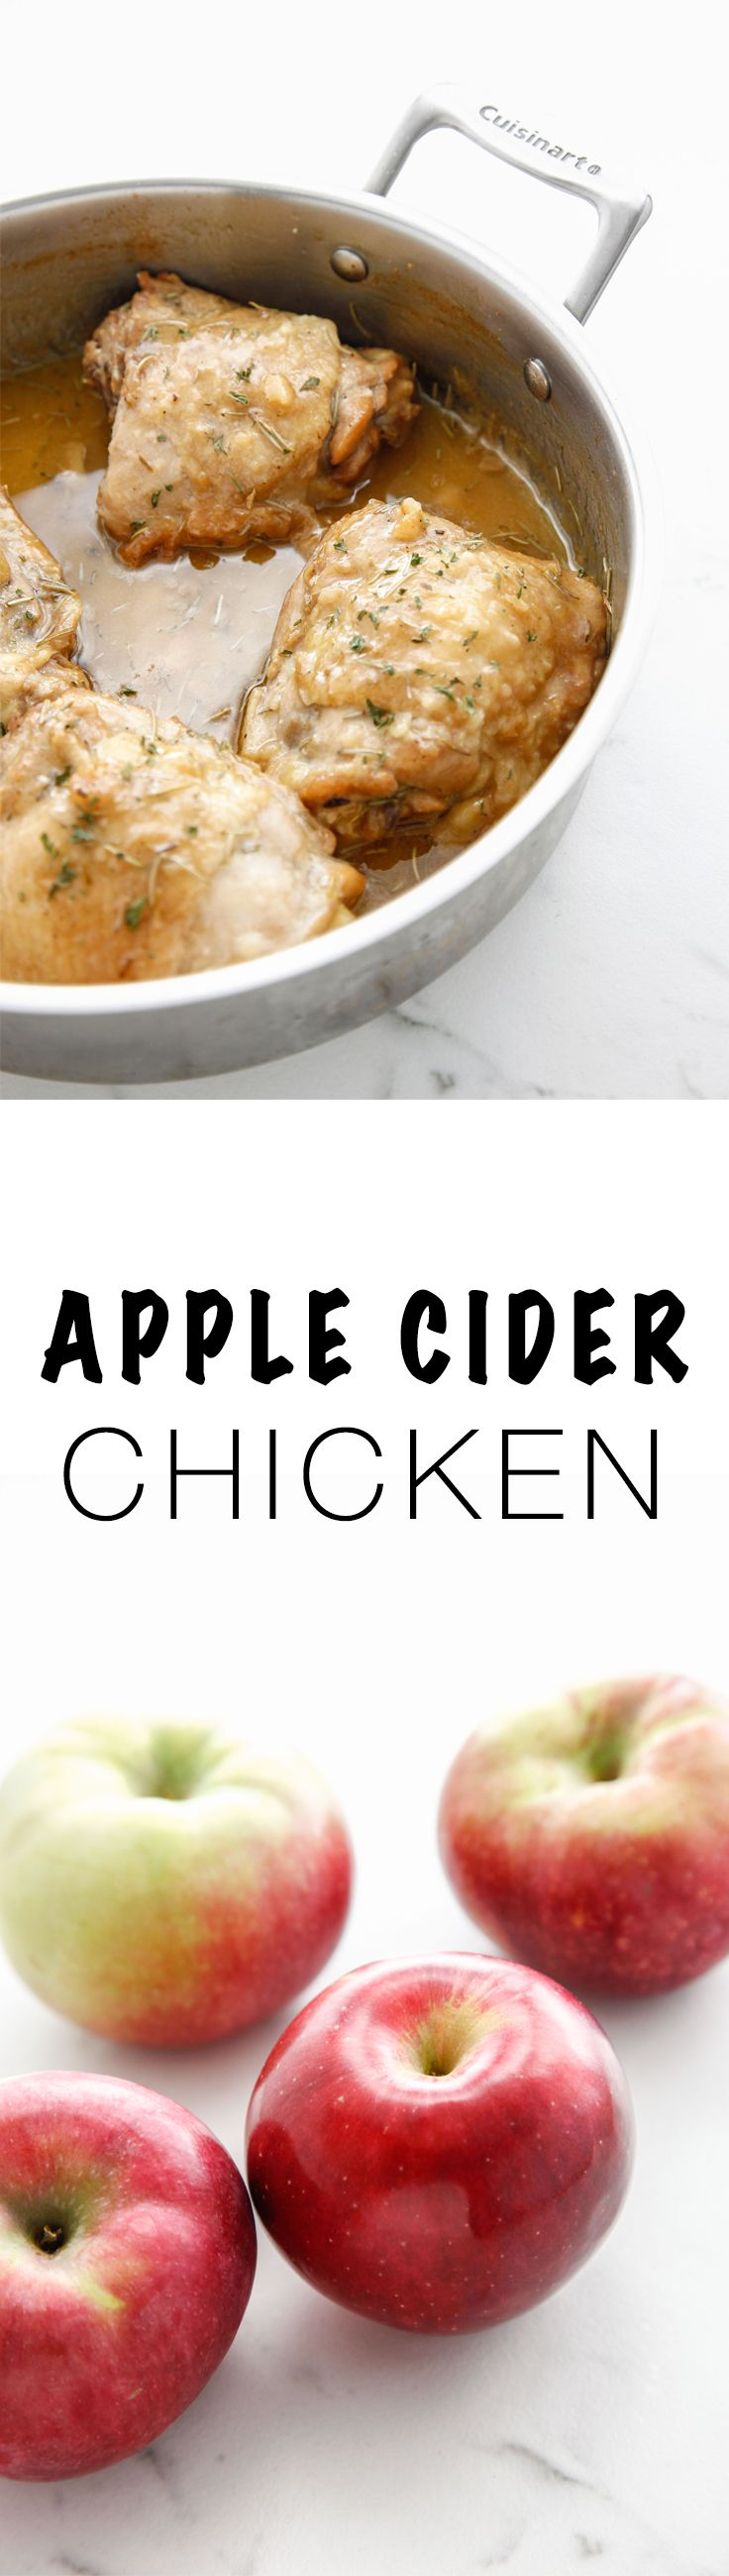 ... on Pinterest | The chicken, Chicken breasts and Baked chicken breast